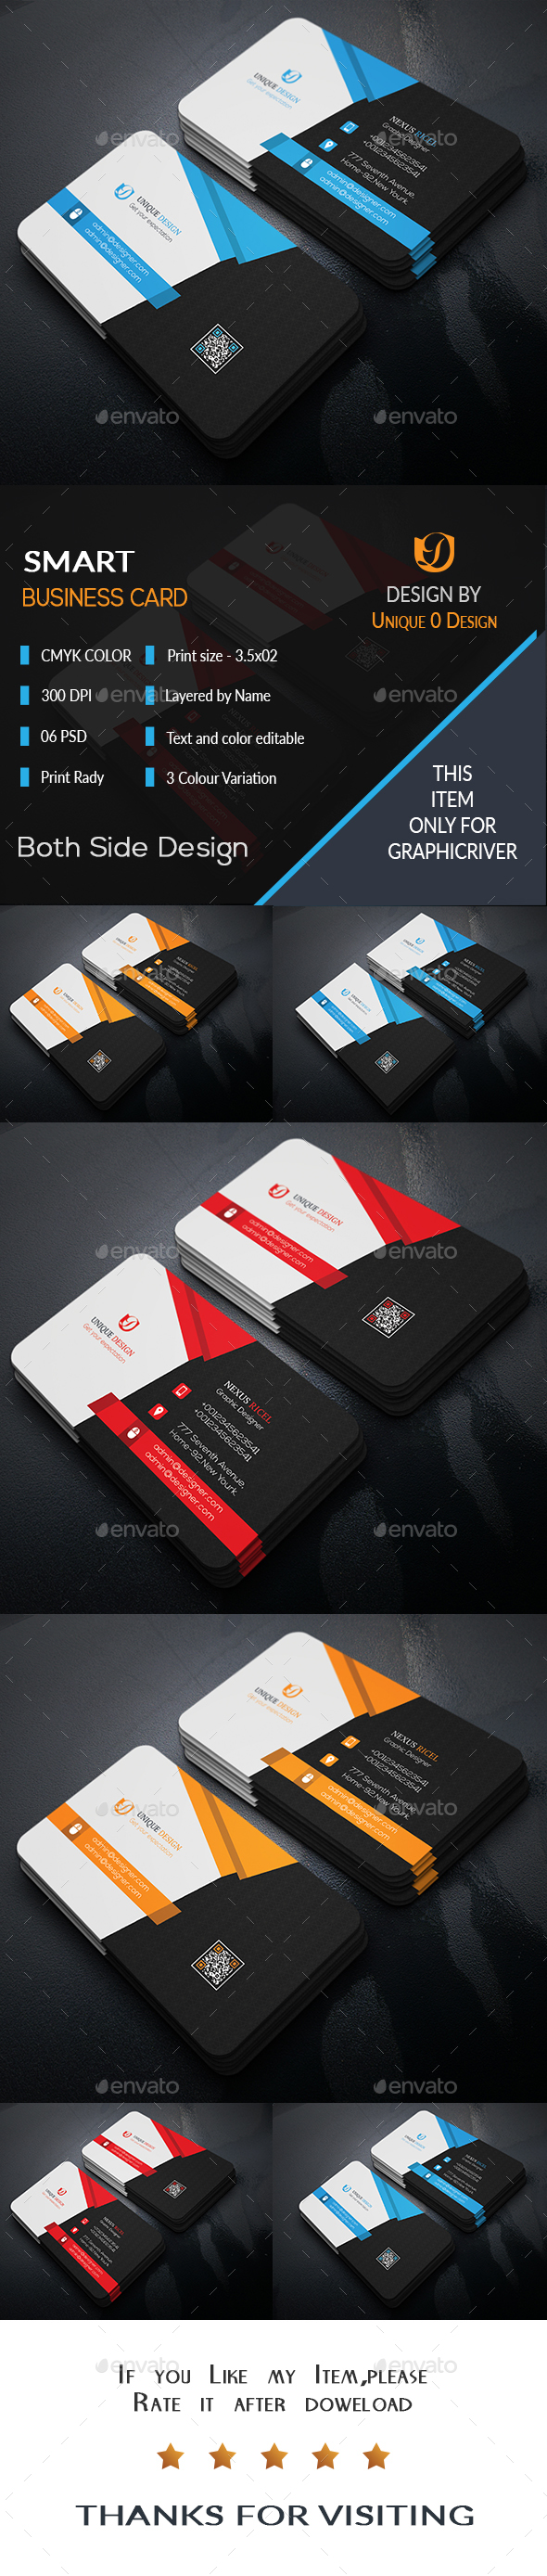 Smart Business Card - Business Cards Print Templates | Business Card ...